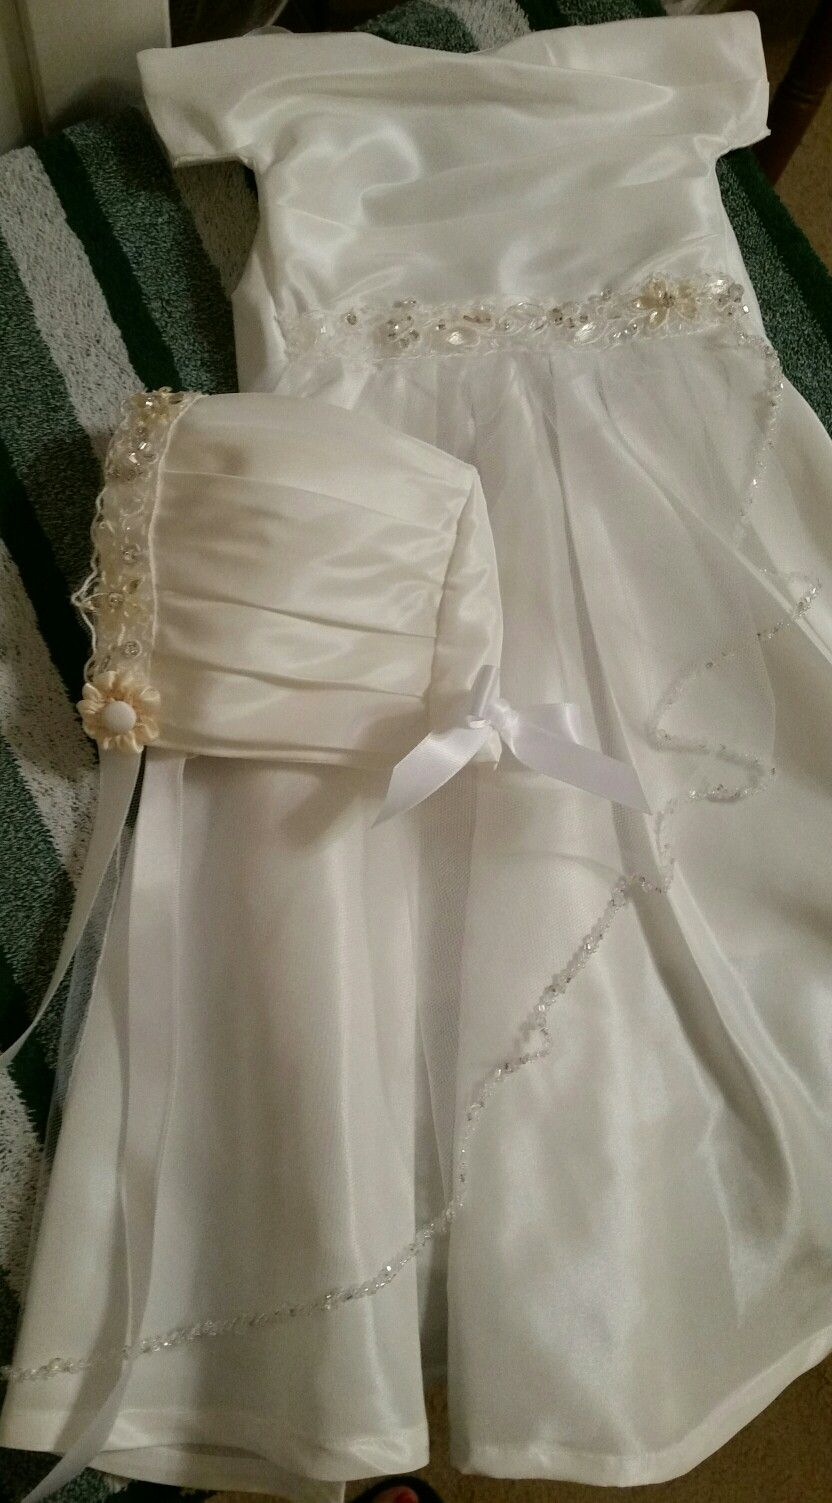 Wedding Dress Donation.Wedding Gown Donation Angel Gown Angel Babies Angel Gowns